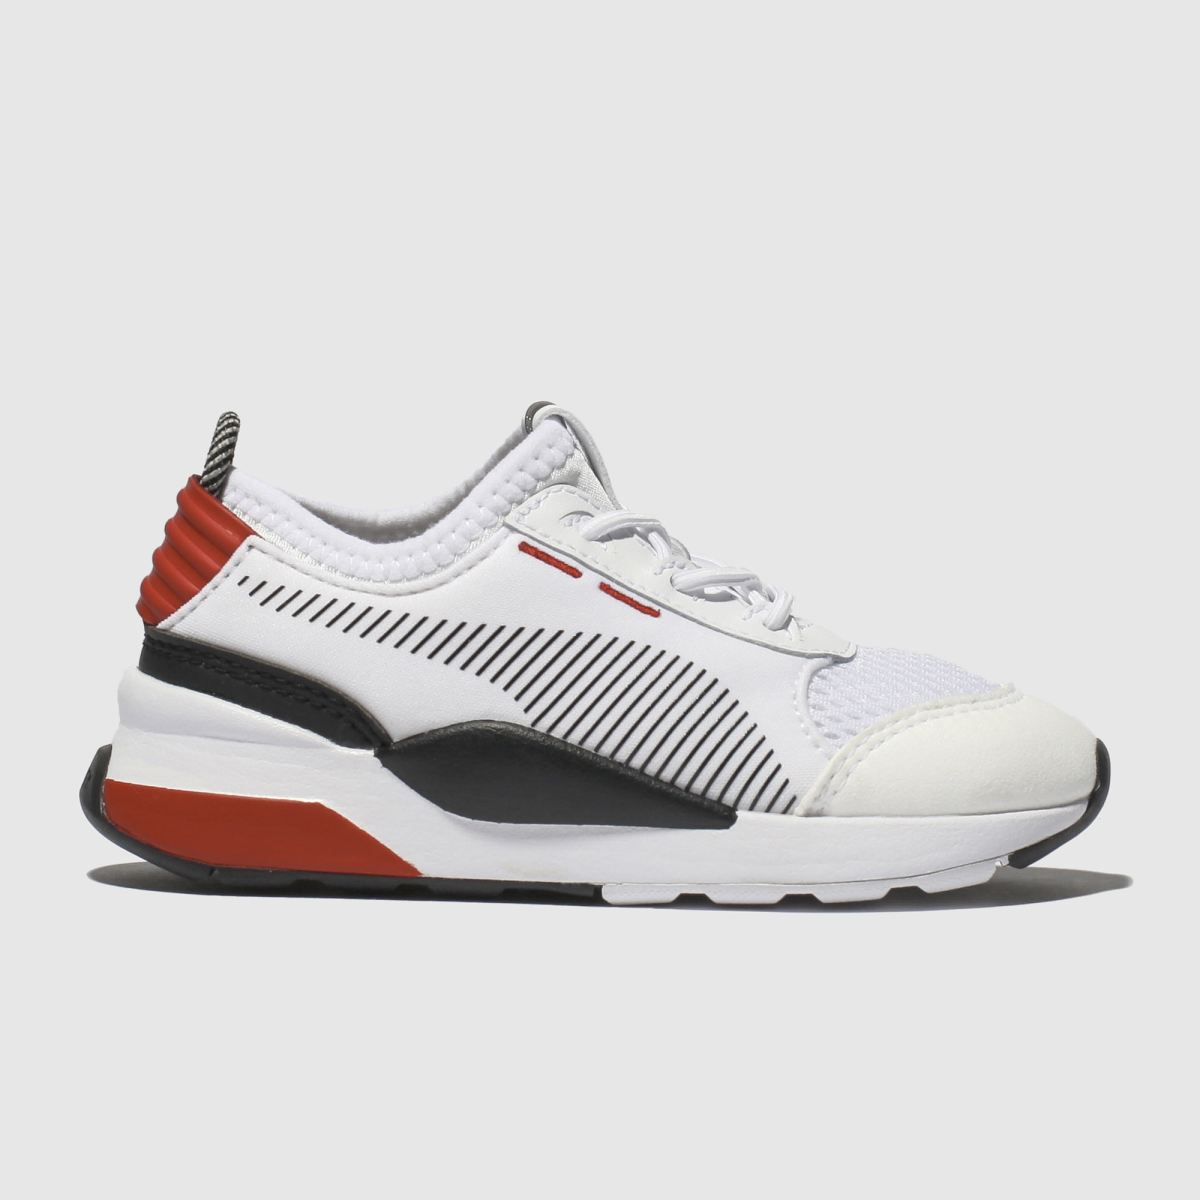 timeless design 09d32 2fbd1 Puma White   Red Rs-0 Winter Inj Toys Trainers Toddler - Schuh at Westquay  - Shop Online